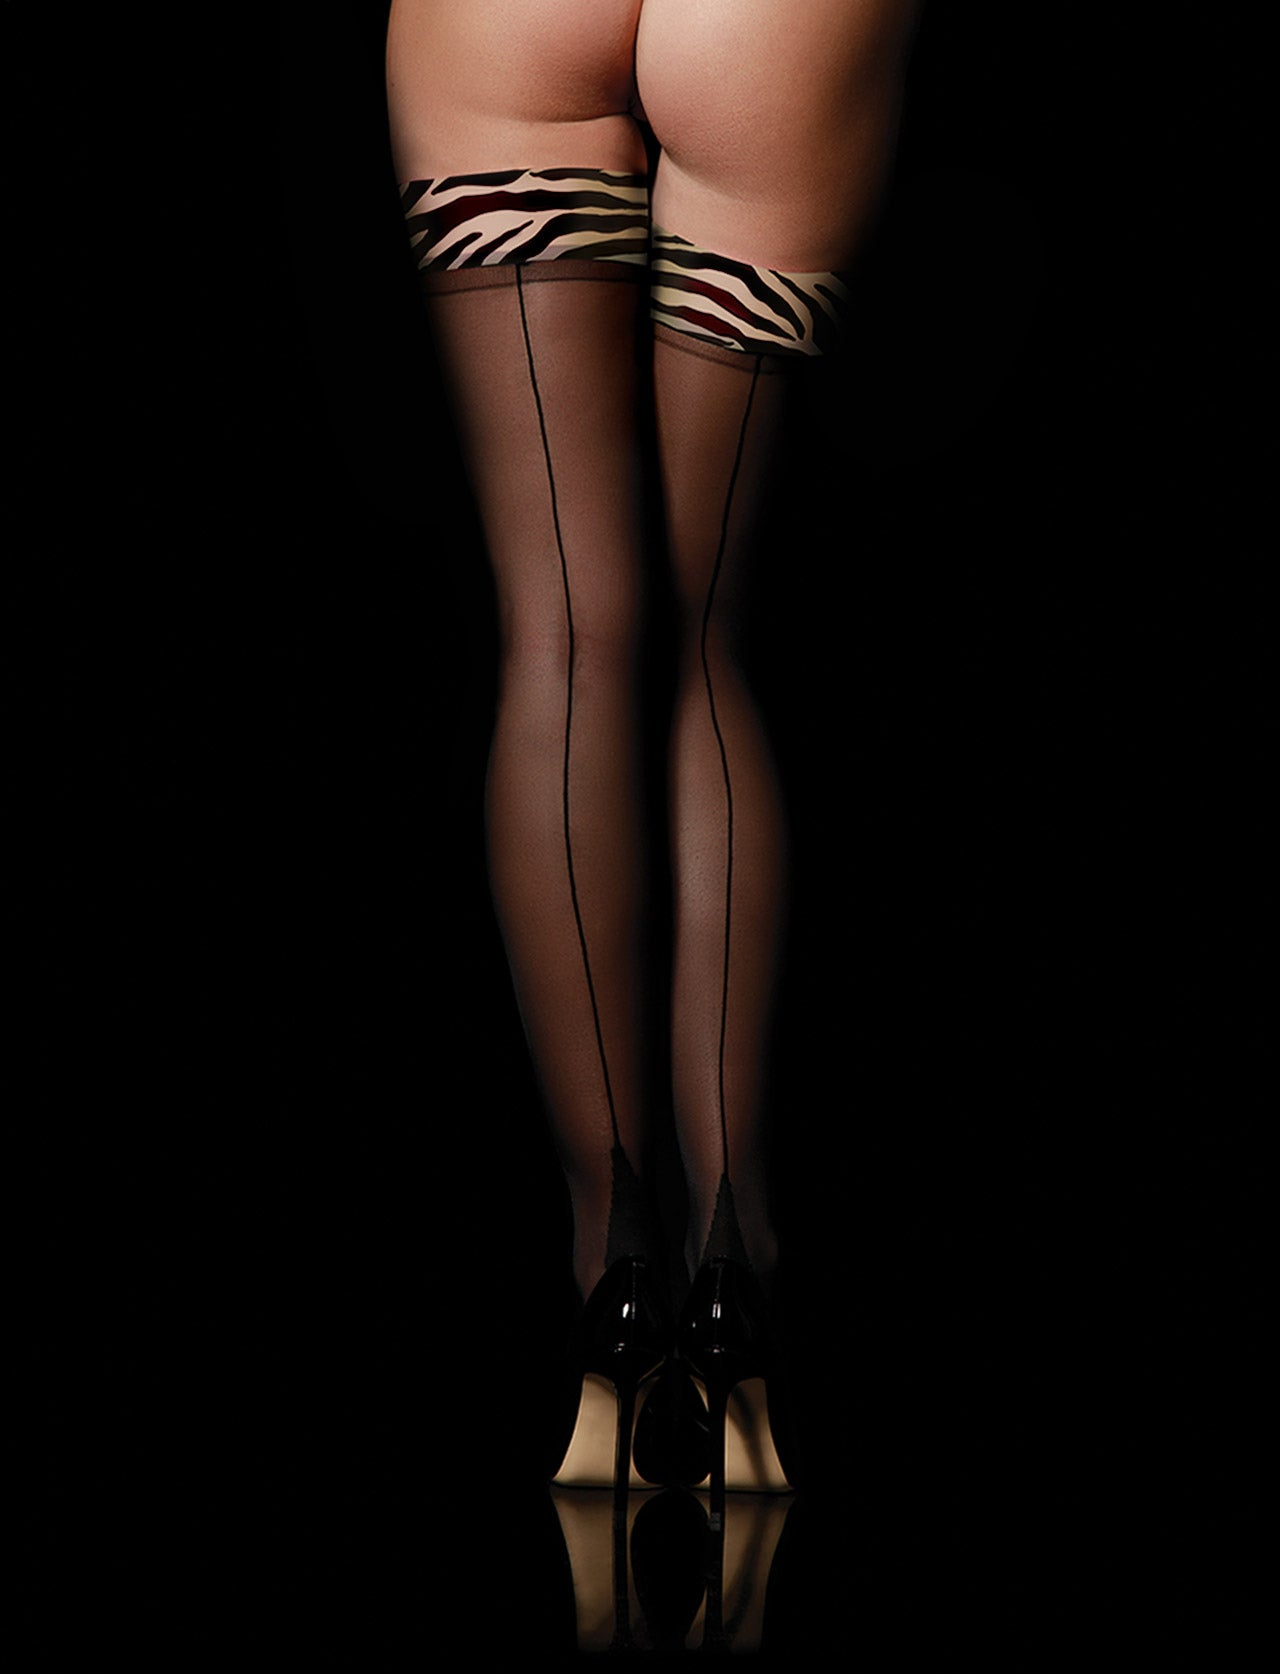 Zebra Print Sheers Thigh High Stay Up Stockings